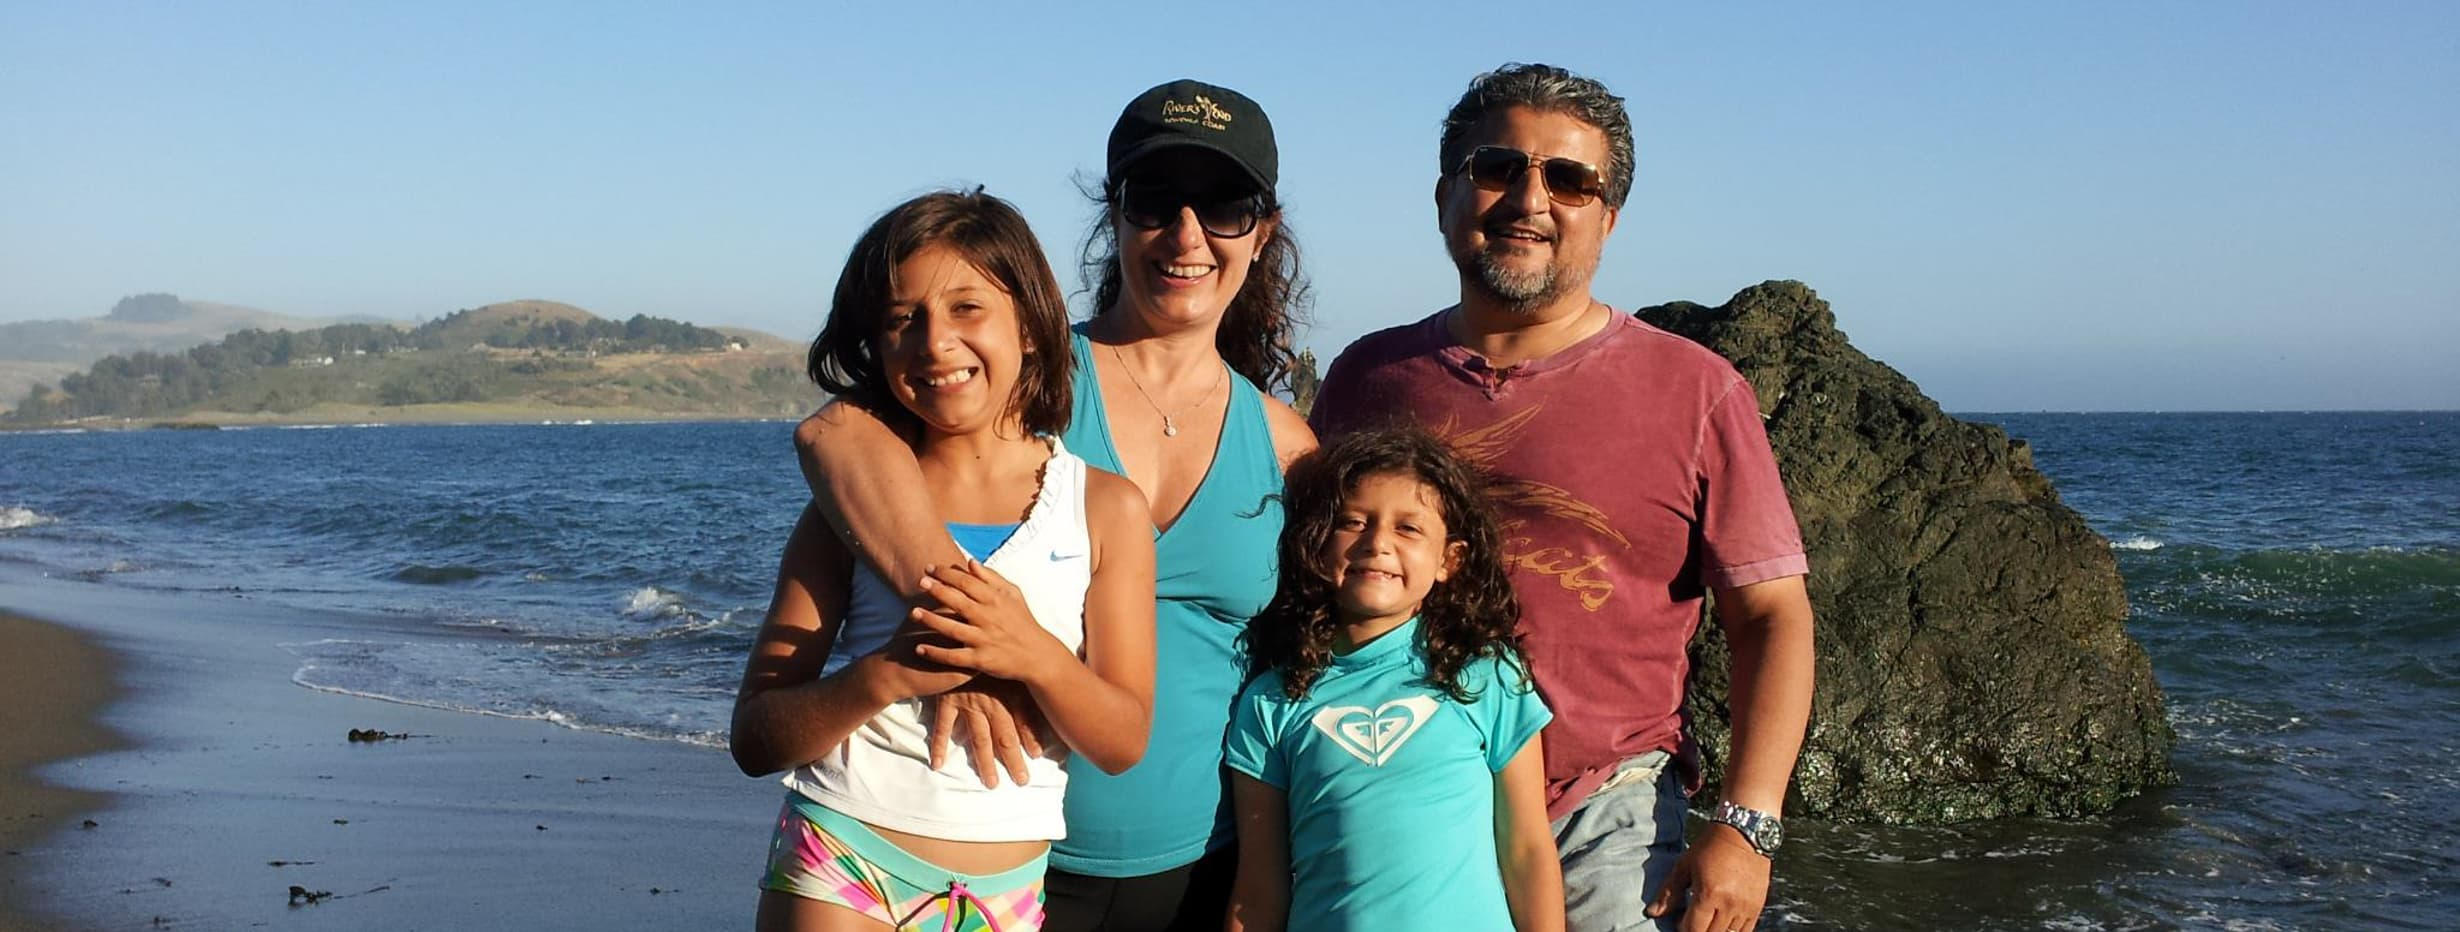 The Rangel family on a beach in California